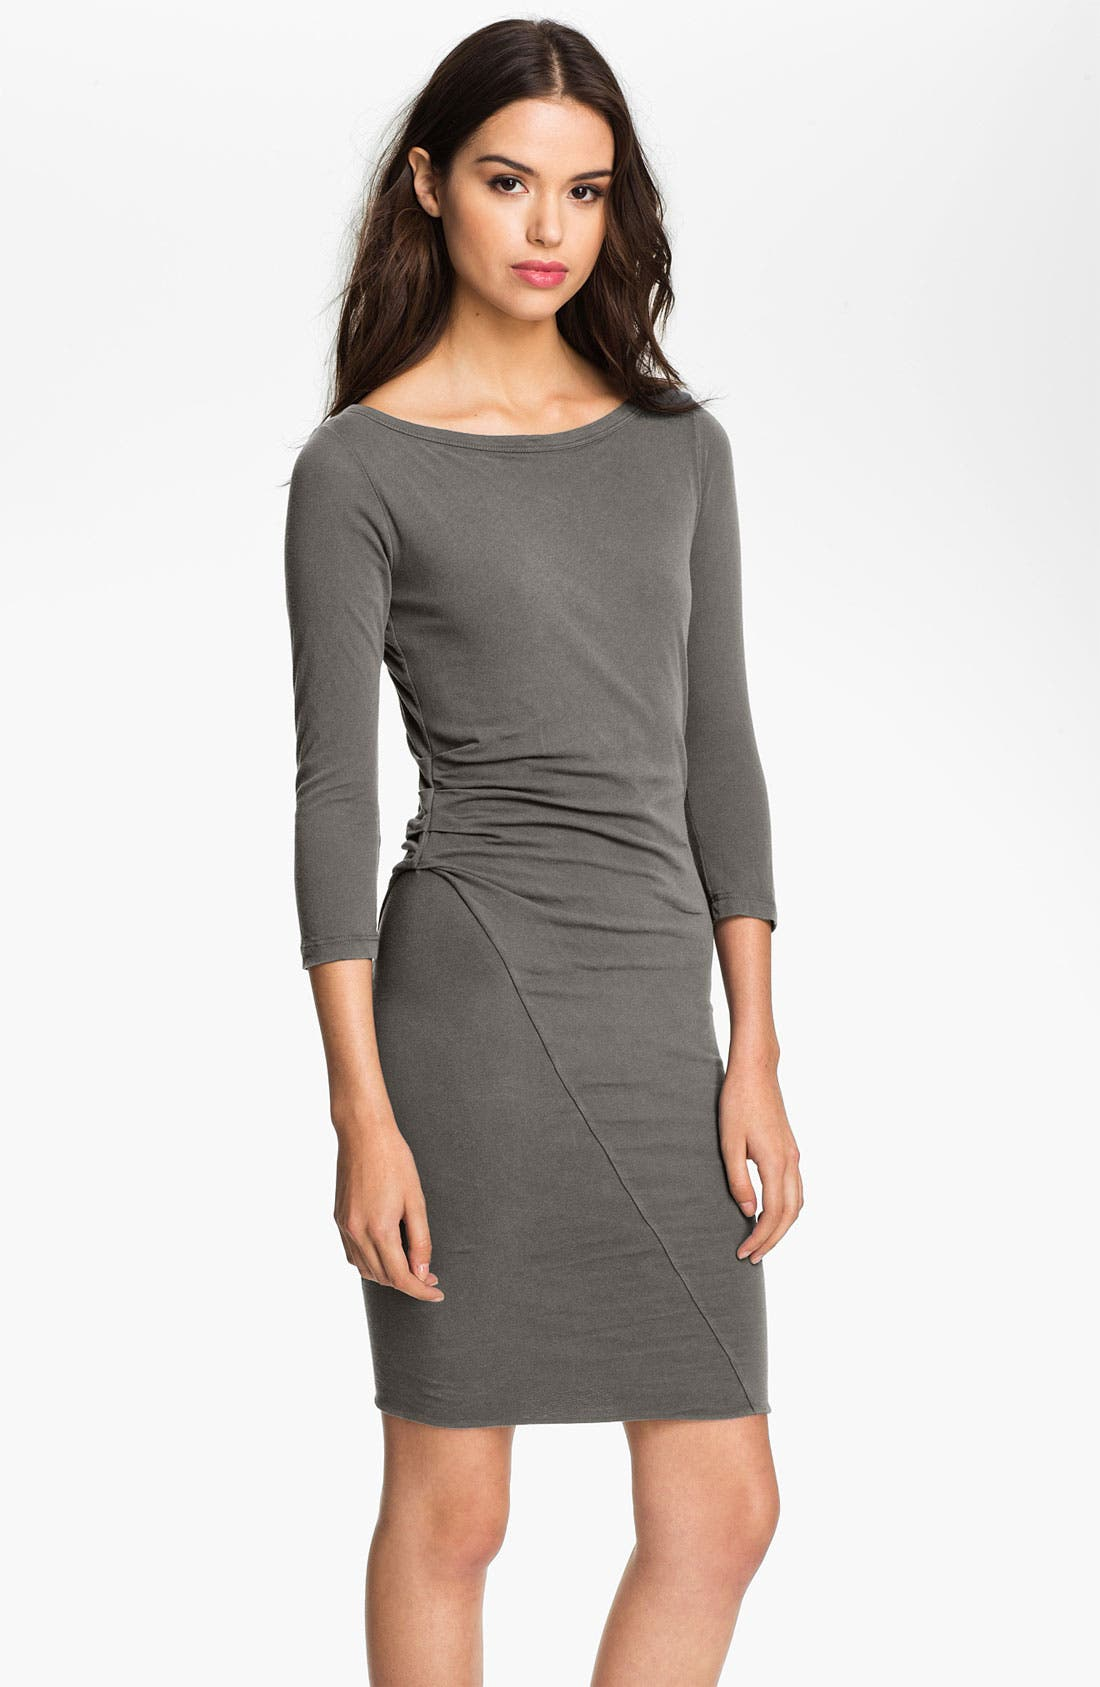 Alternate Image 1 Selected - James Perse Asymmetrical Ruched Dress